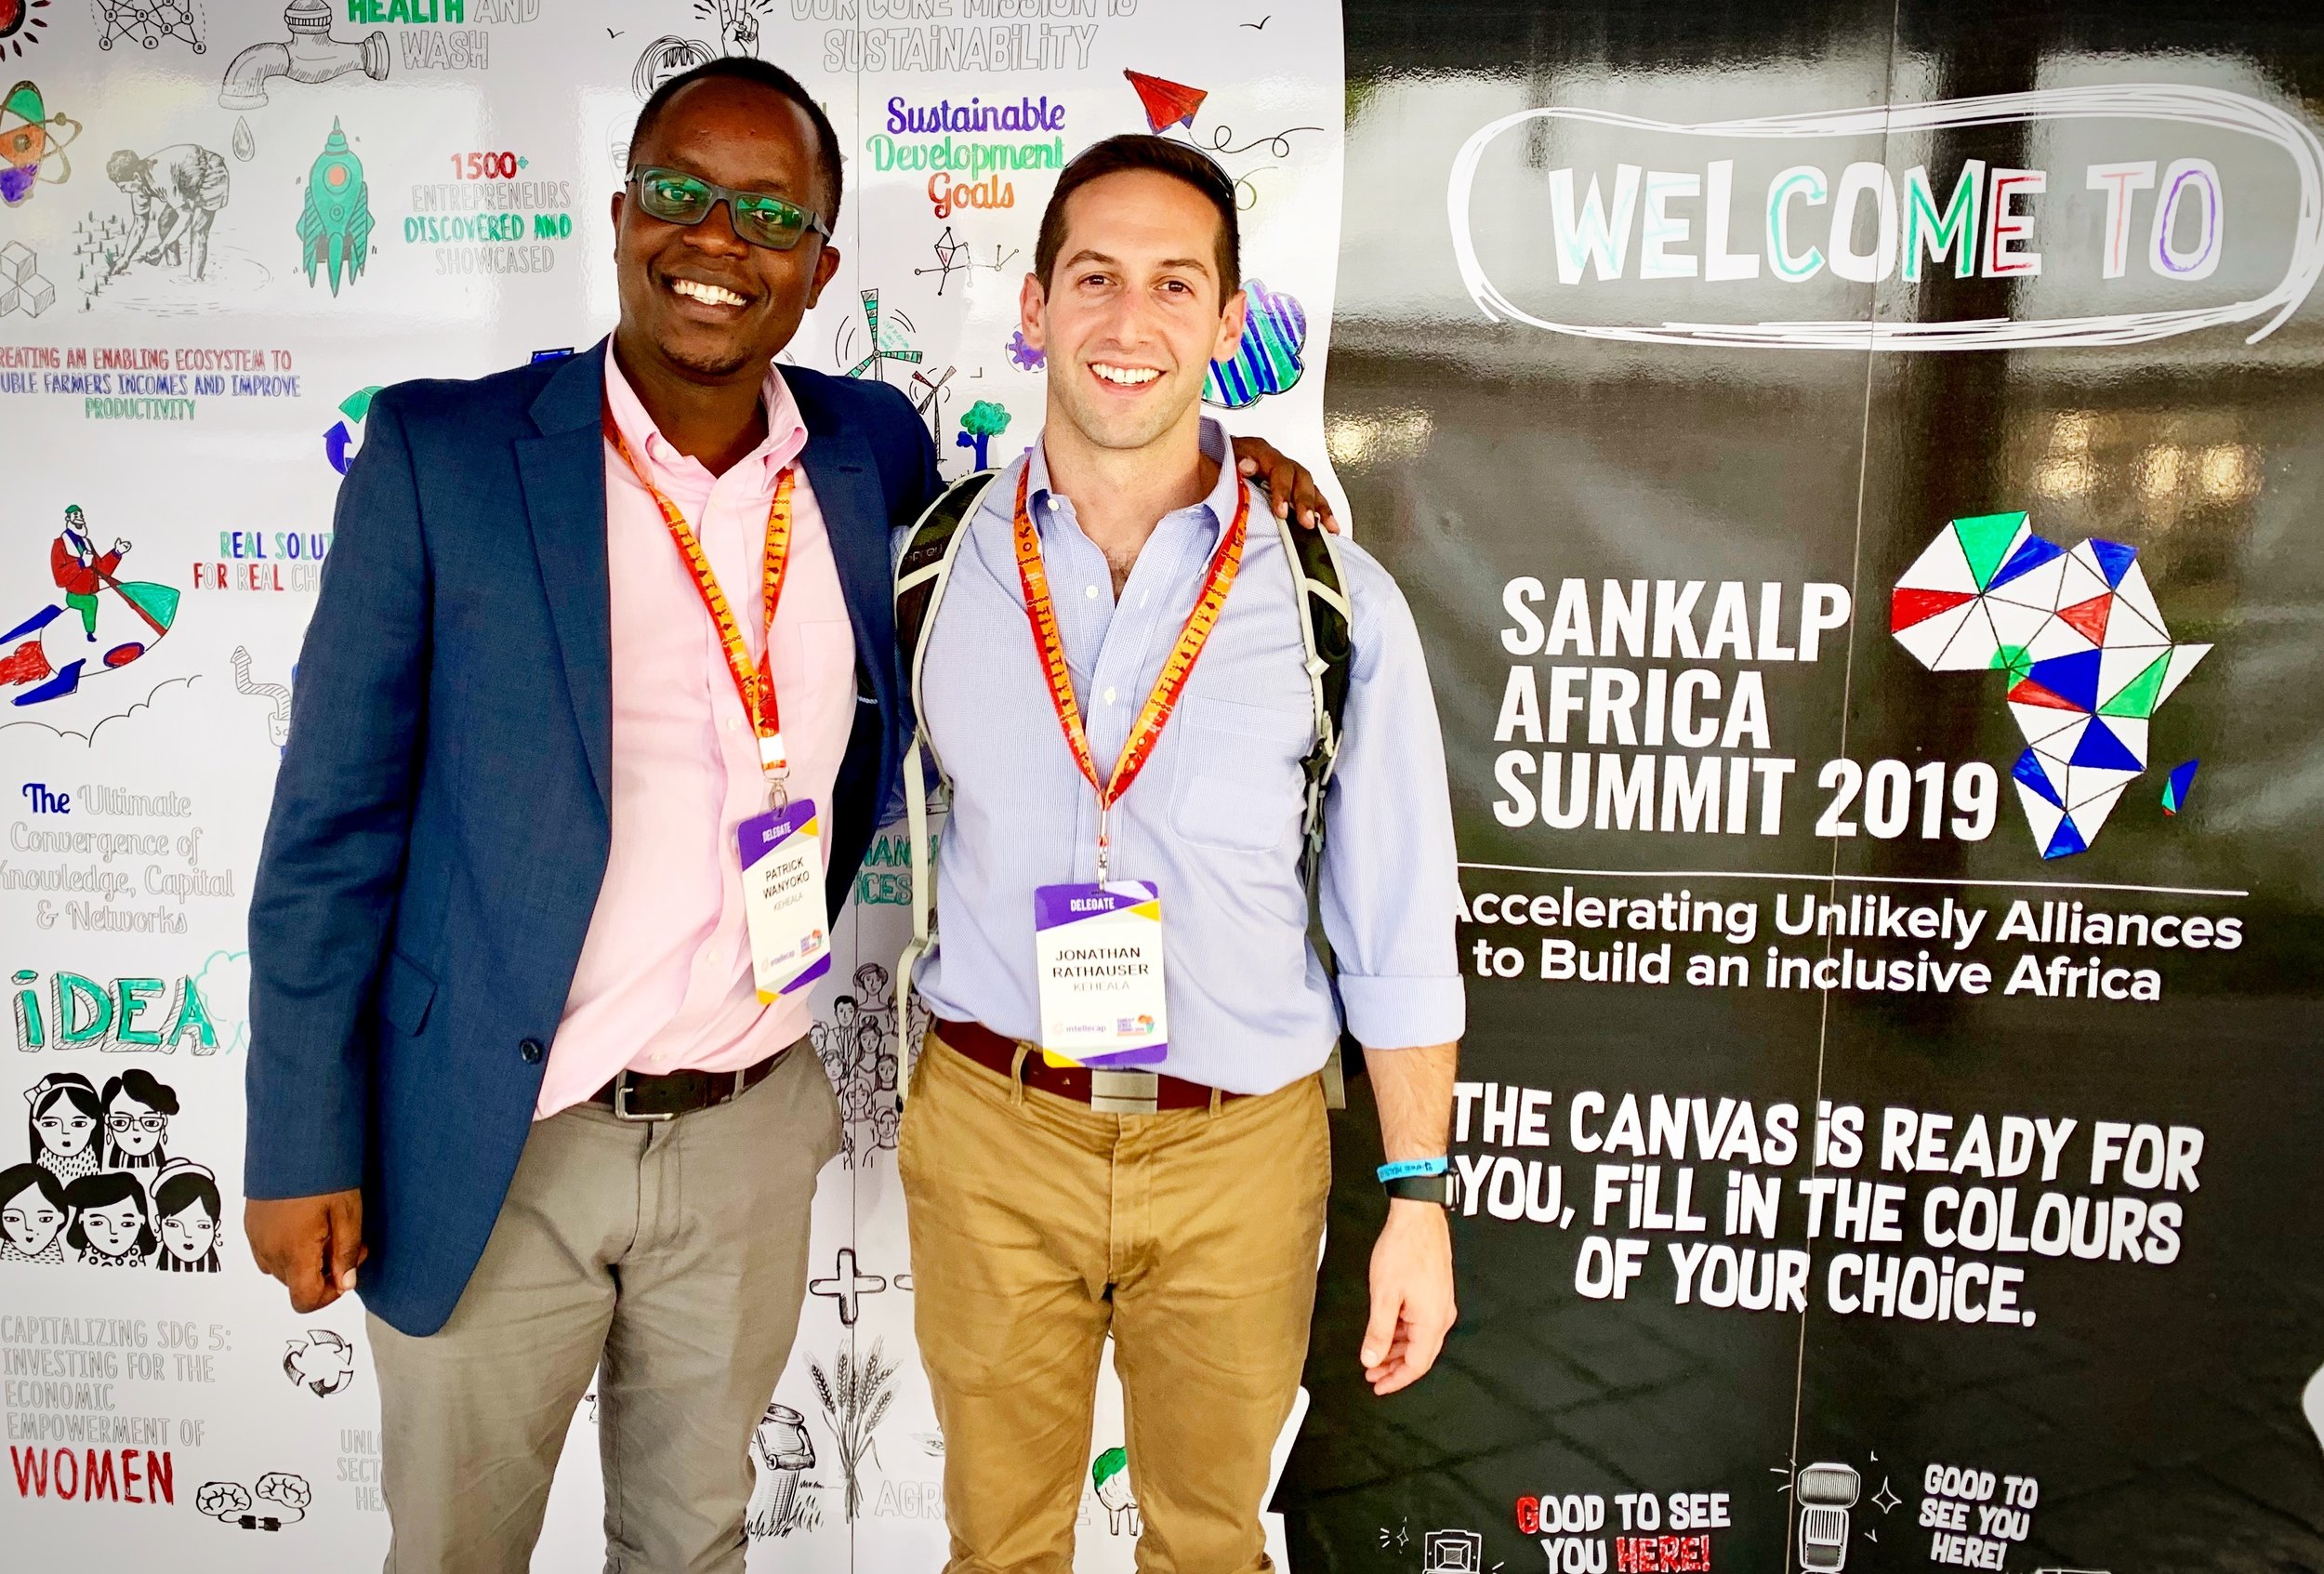 Patrick with Keheala's CEO & Founder at Sankalp Africa 2019